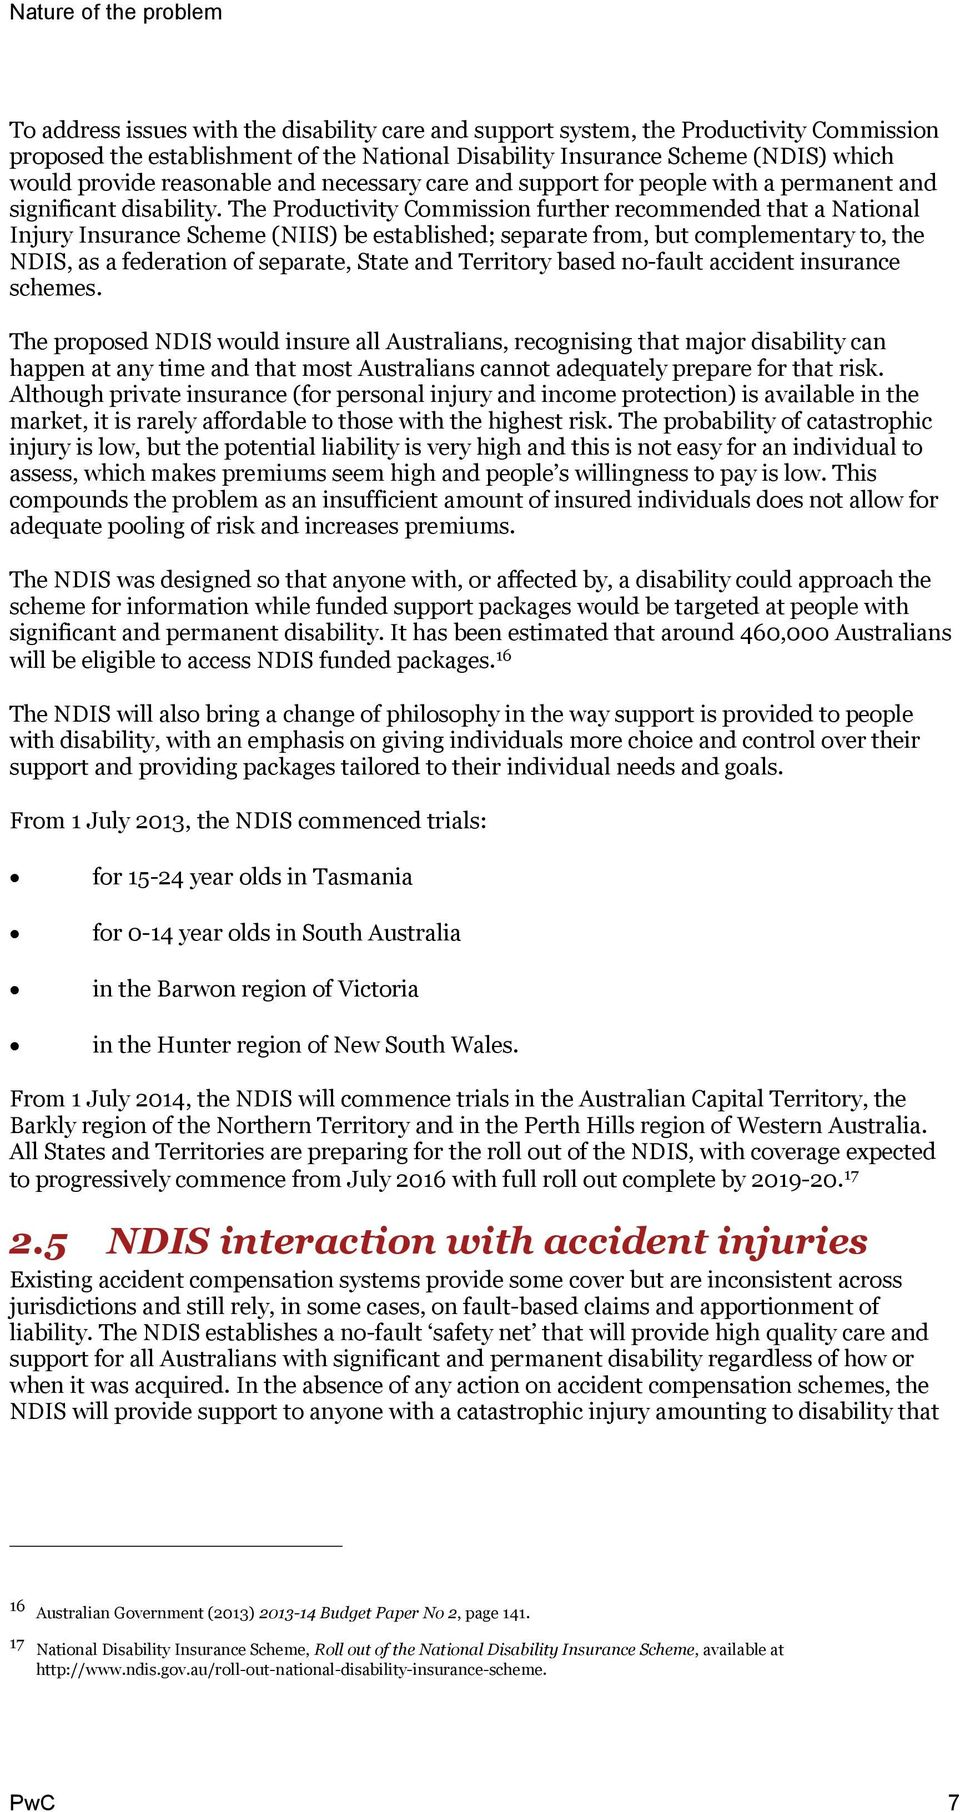 The Productivity Commission further recommended that a National Injury Insurance Scheme (NIIS) be established; separate from, but complementary to, the NDIS, as a federation of separate, State and